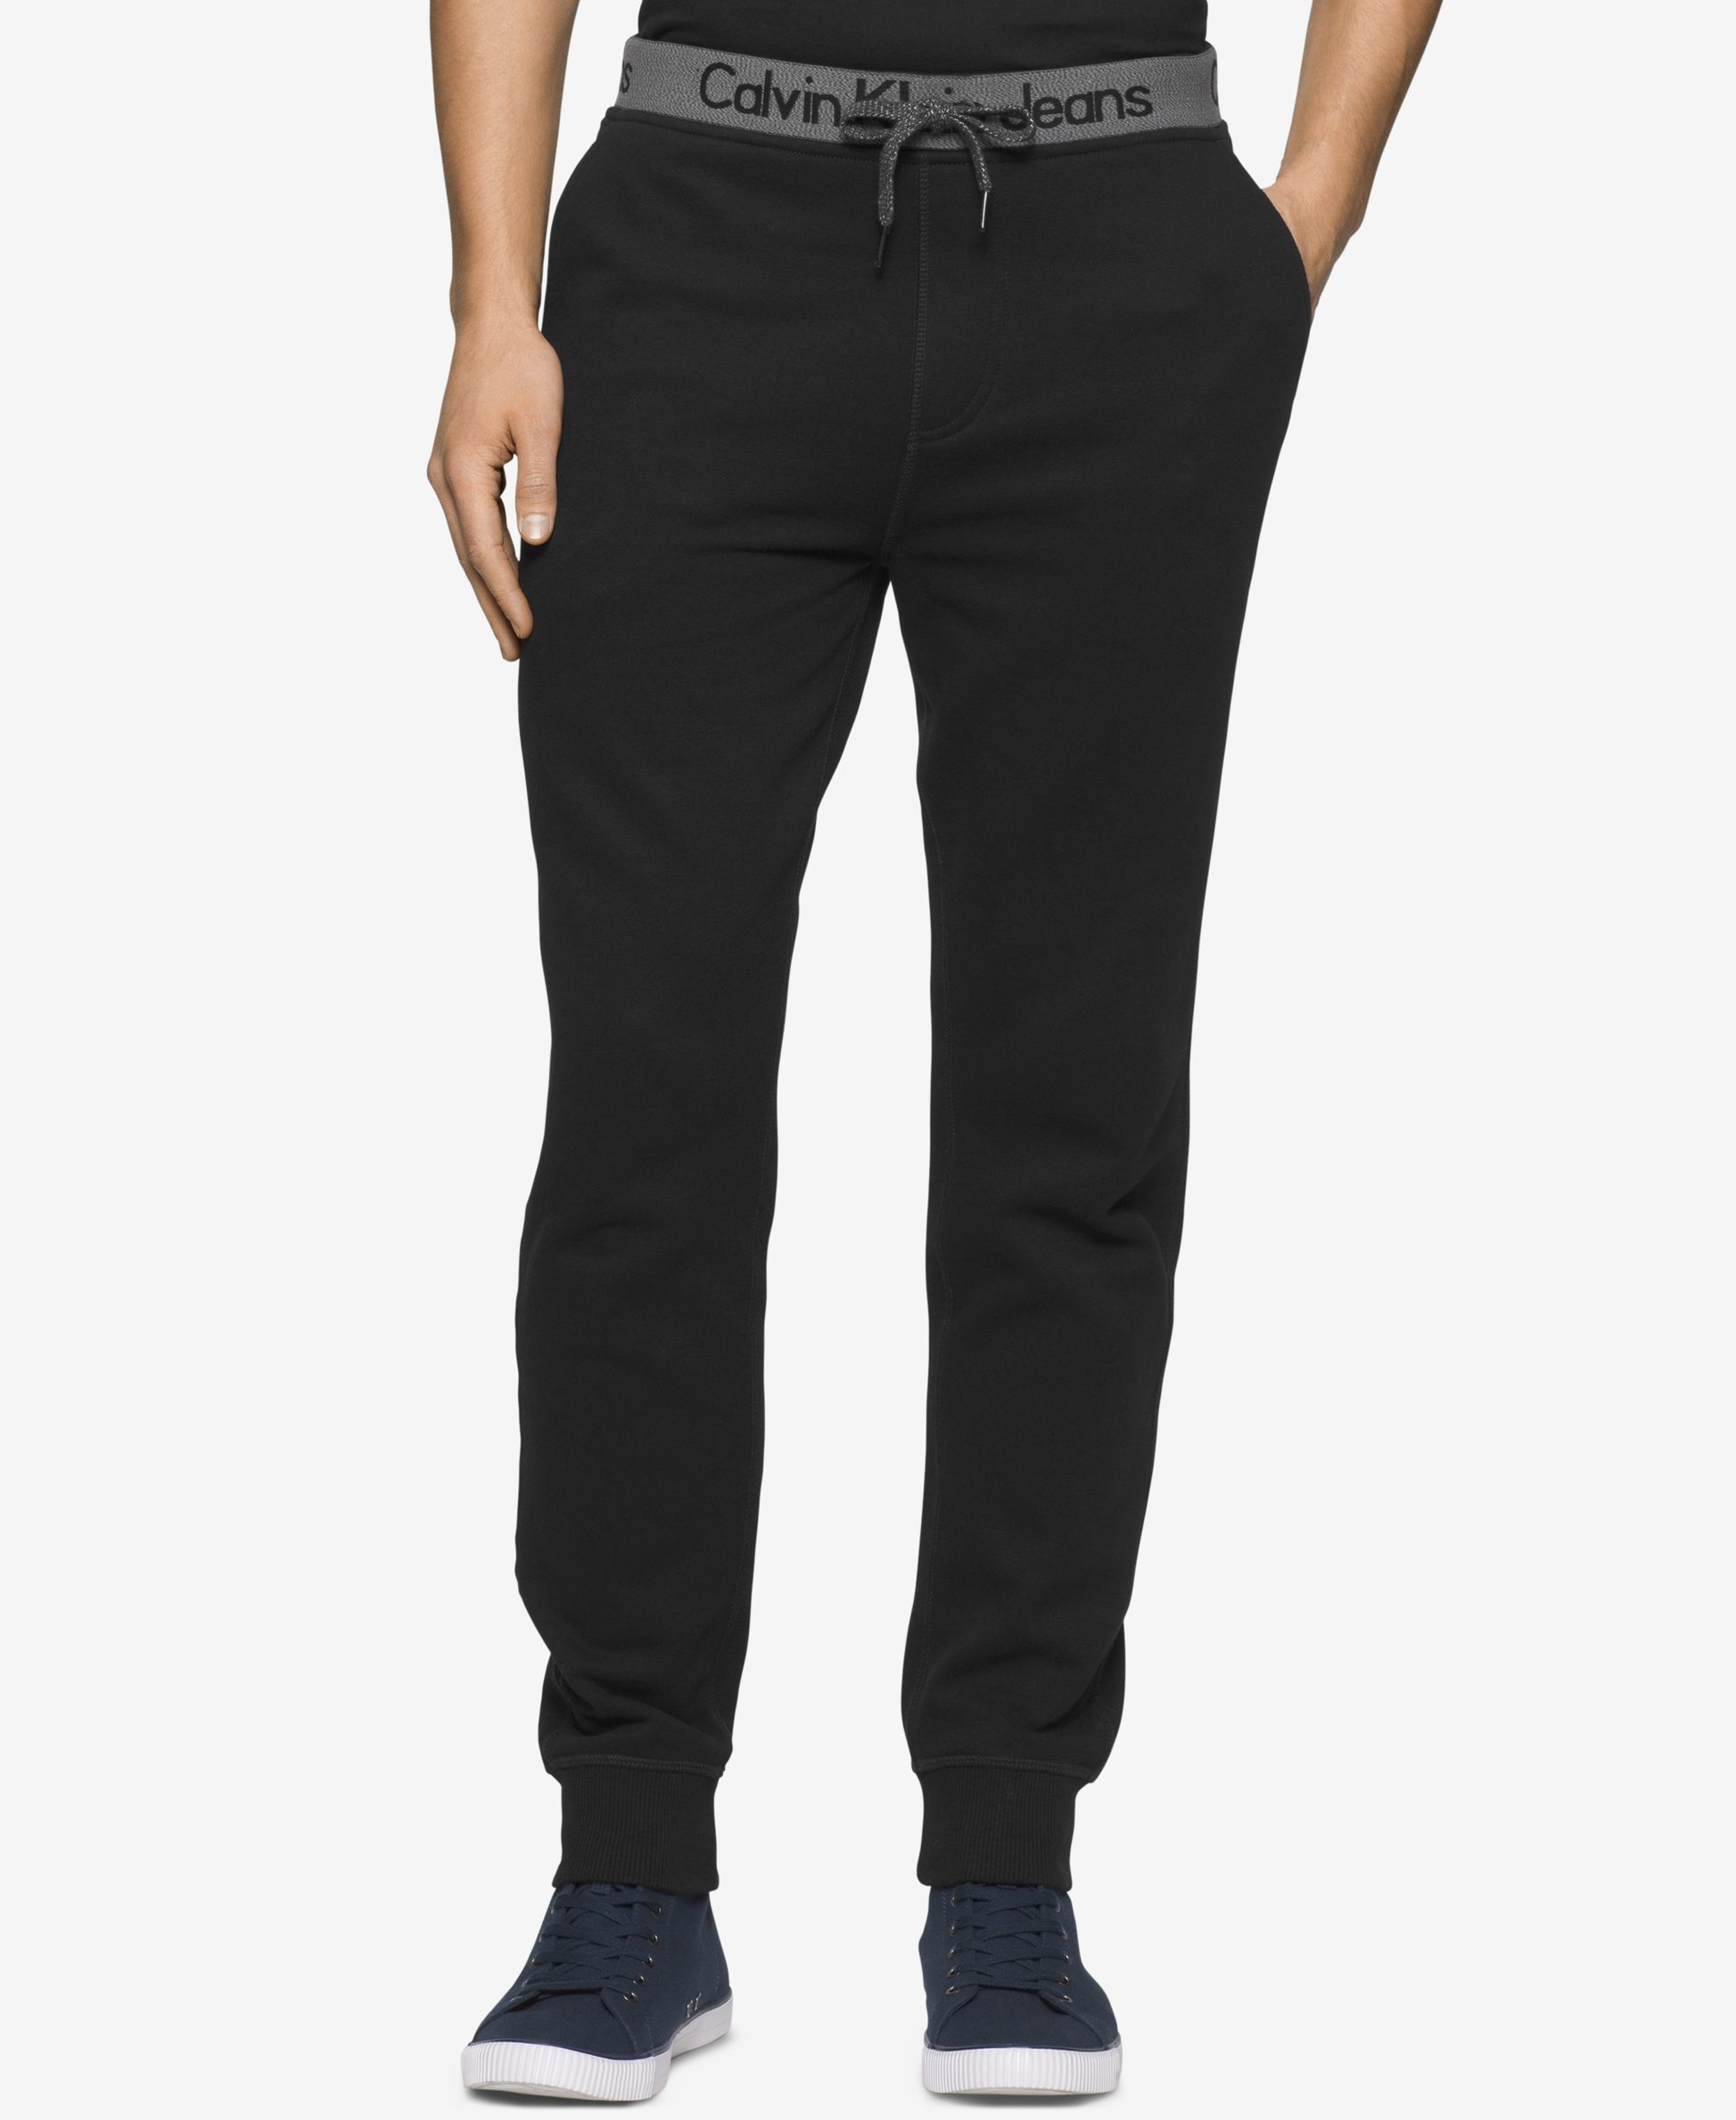 Find your adidas Black - Pants at teraisompcz8d.ga All styles and colors available in the official adidas online store.